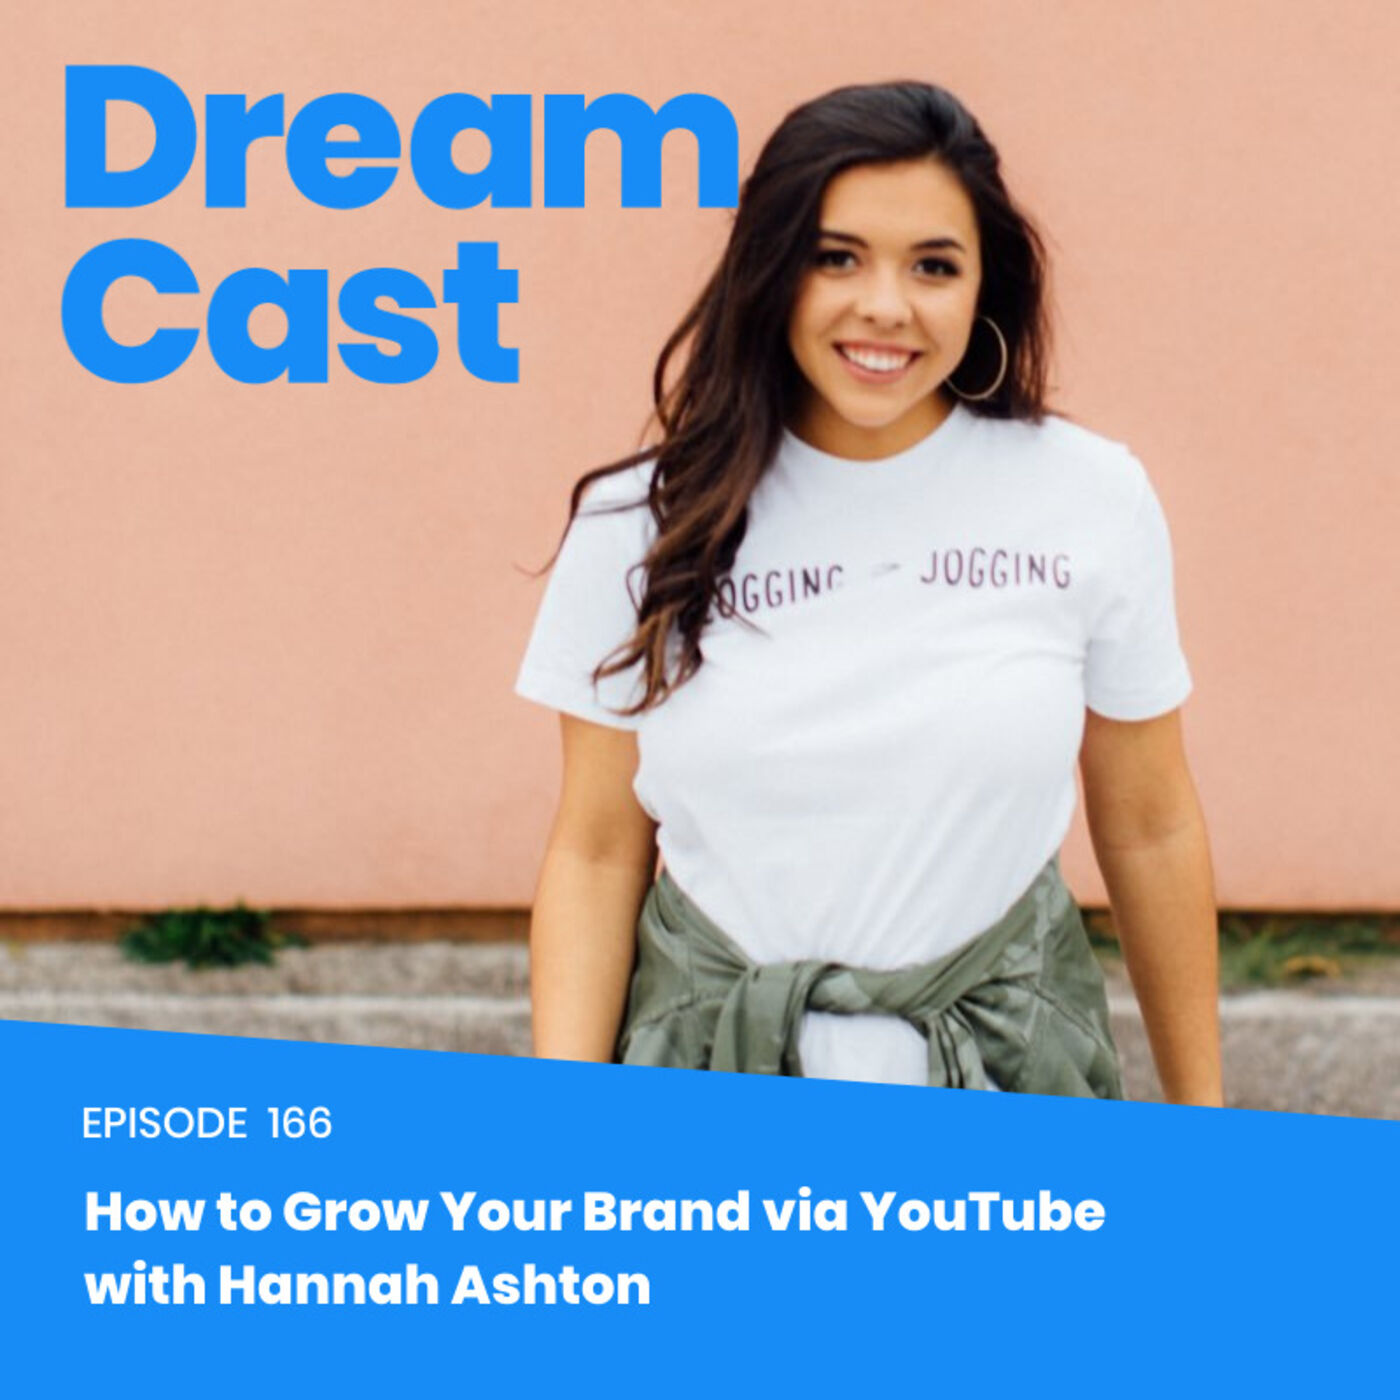 Episode 166 – How to Grow Your Brand via YouTube with Hannah Ashton